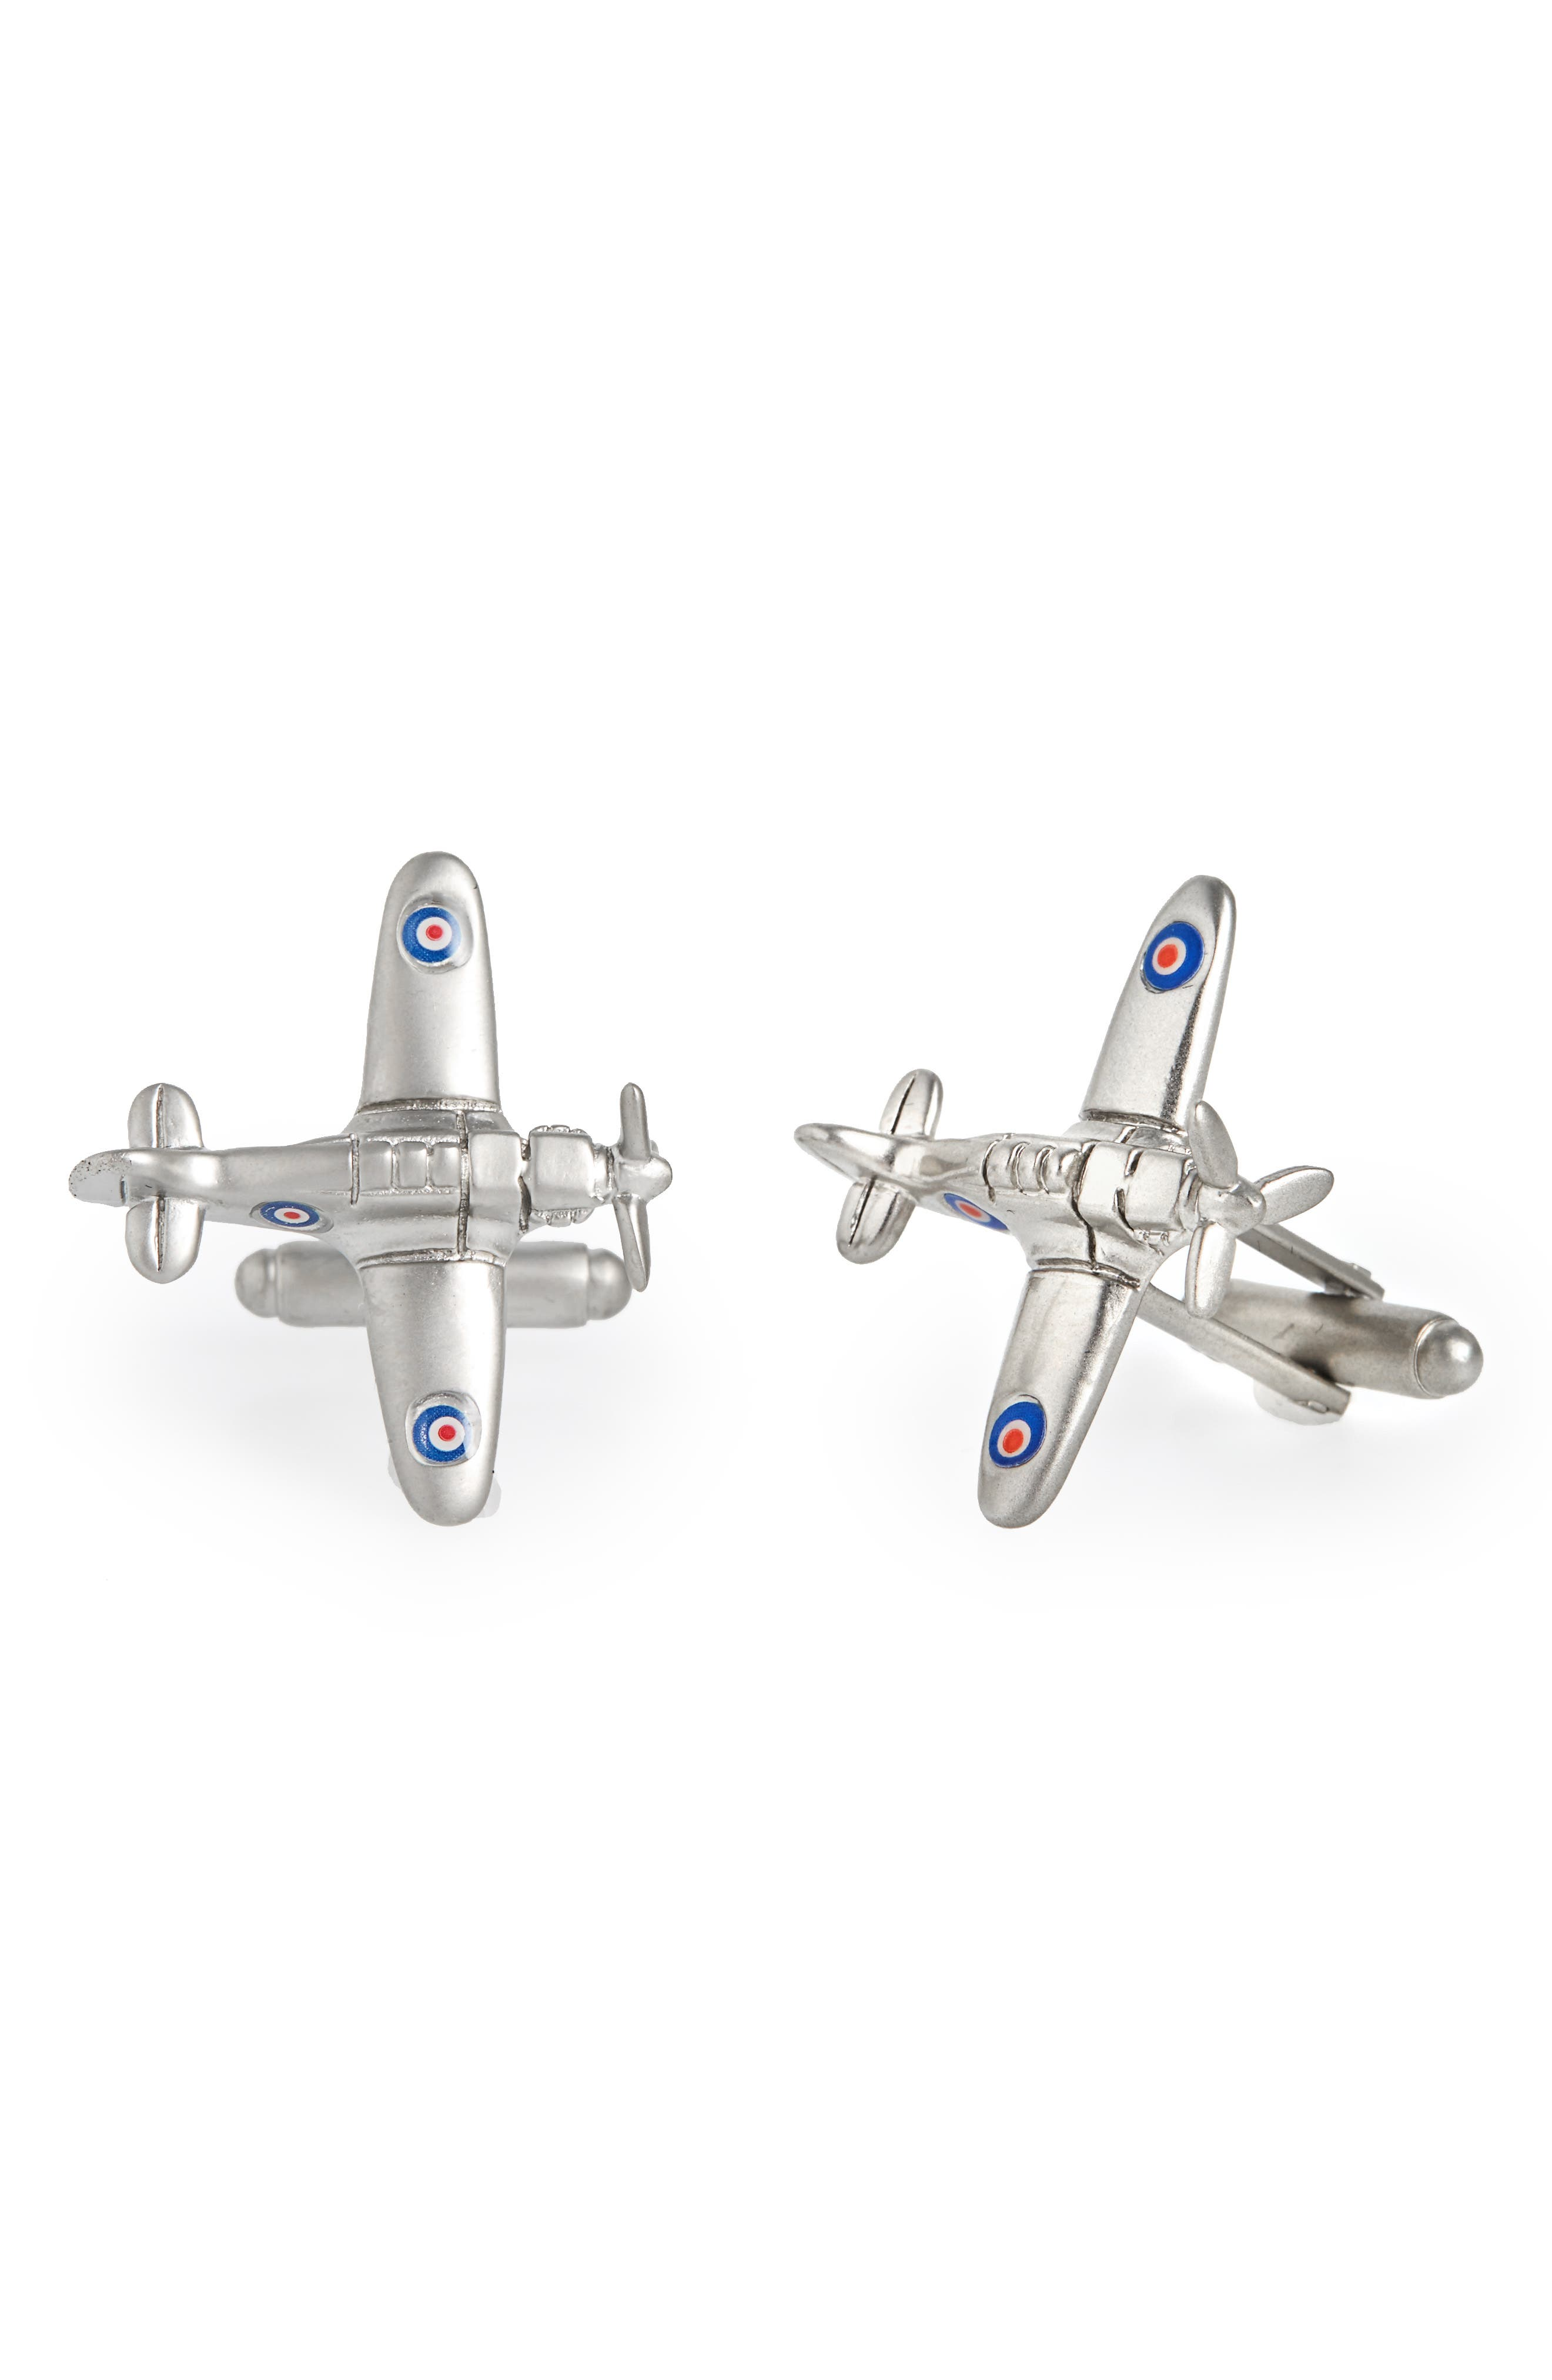 Alternate Image 1 Selected - Link Up Fighter Plane Cuff Links